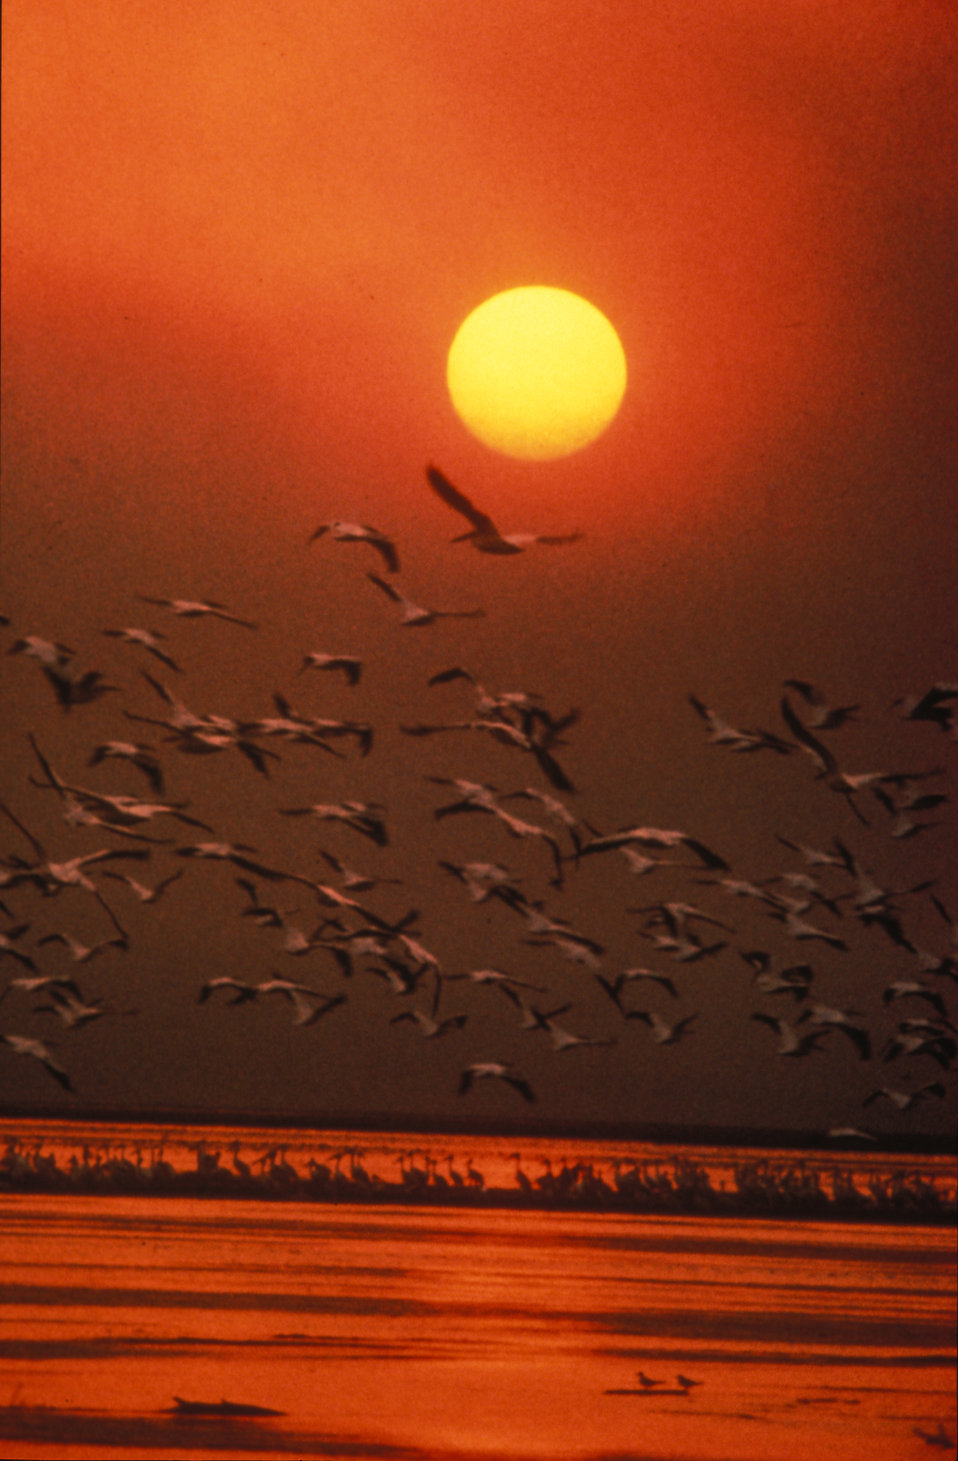 Sunset Free Stock Photo White Pelicans Flying Over The